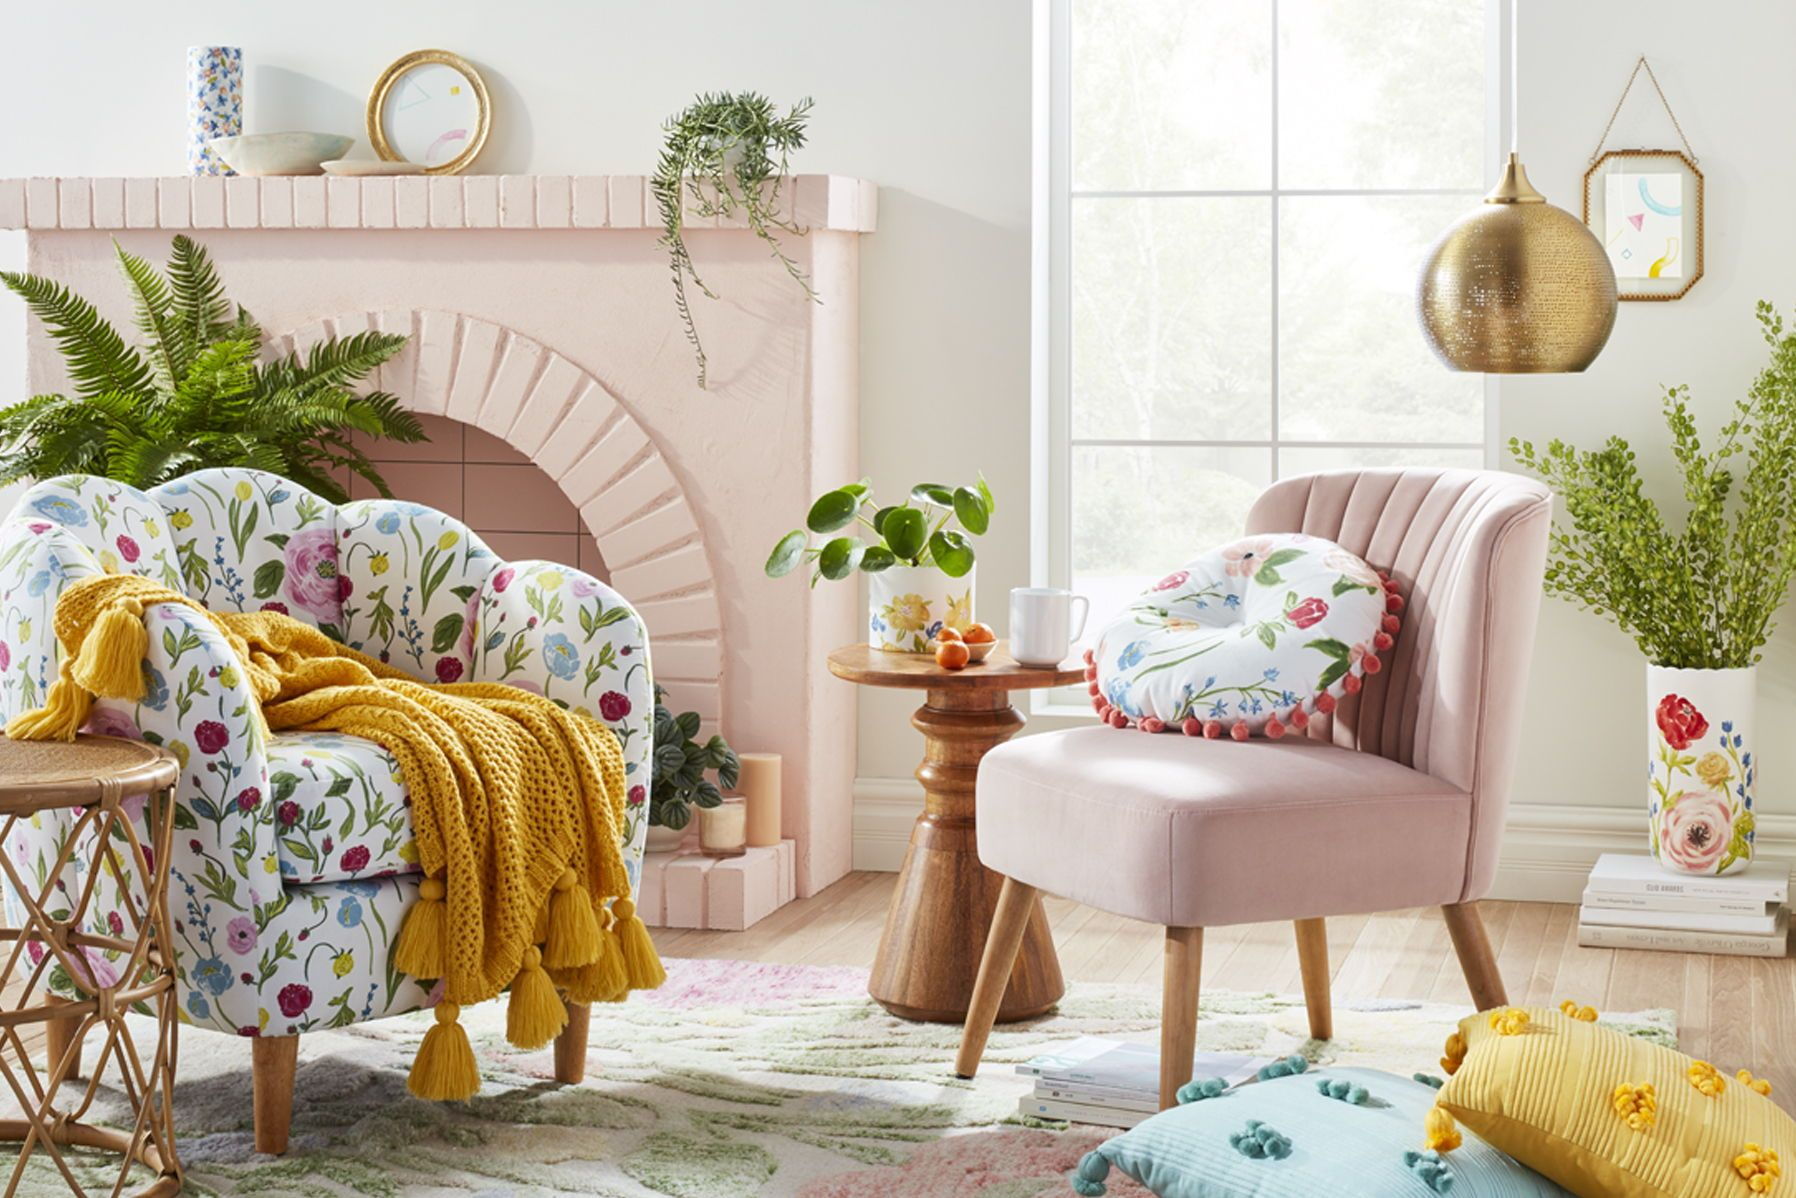 Target Just Announced Its Spring 2020 Home Collection